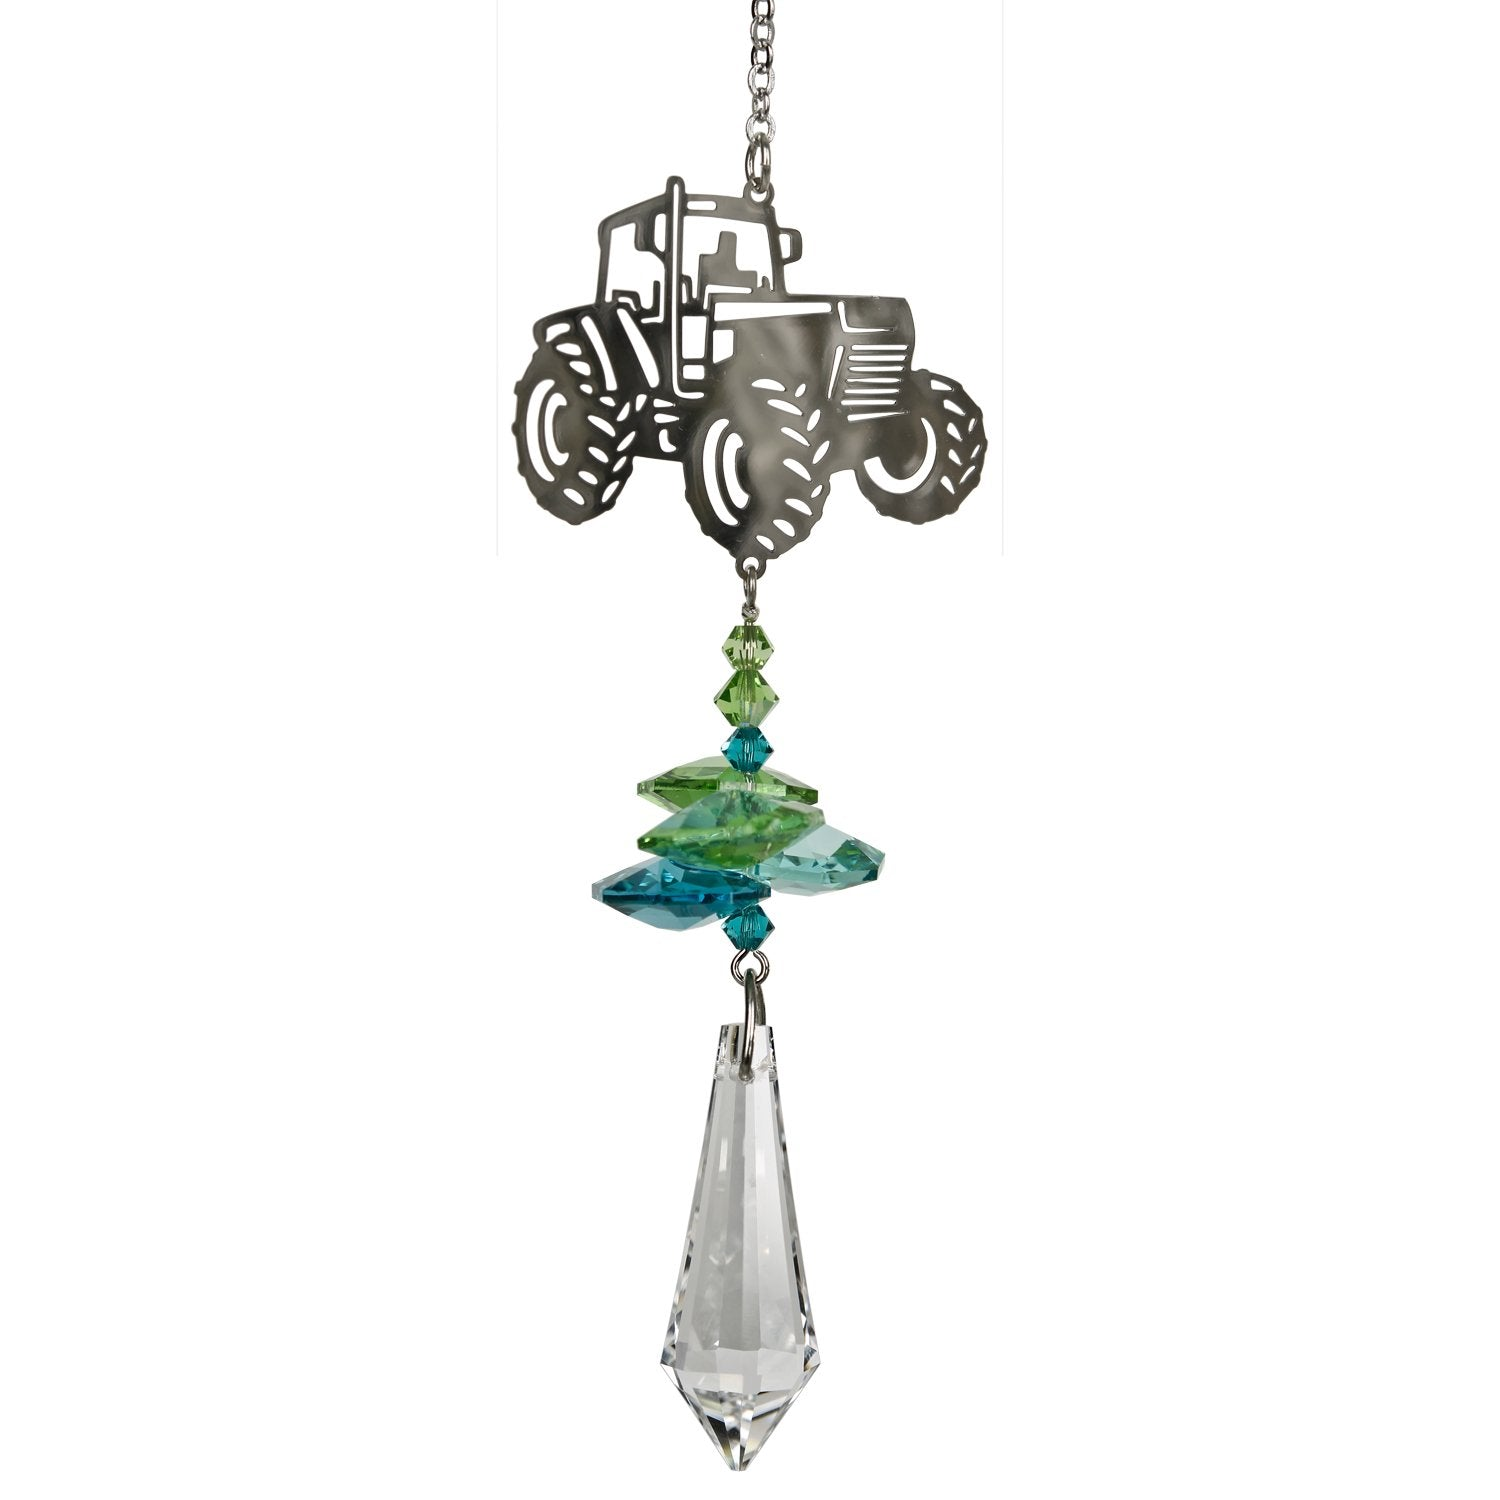 Crystal Fantasy Suncatcher - Tractor alternate product image